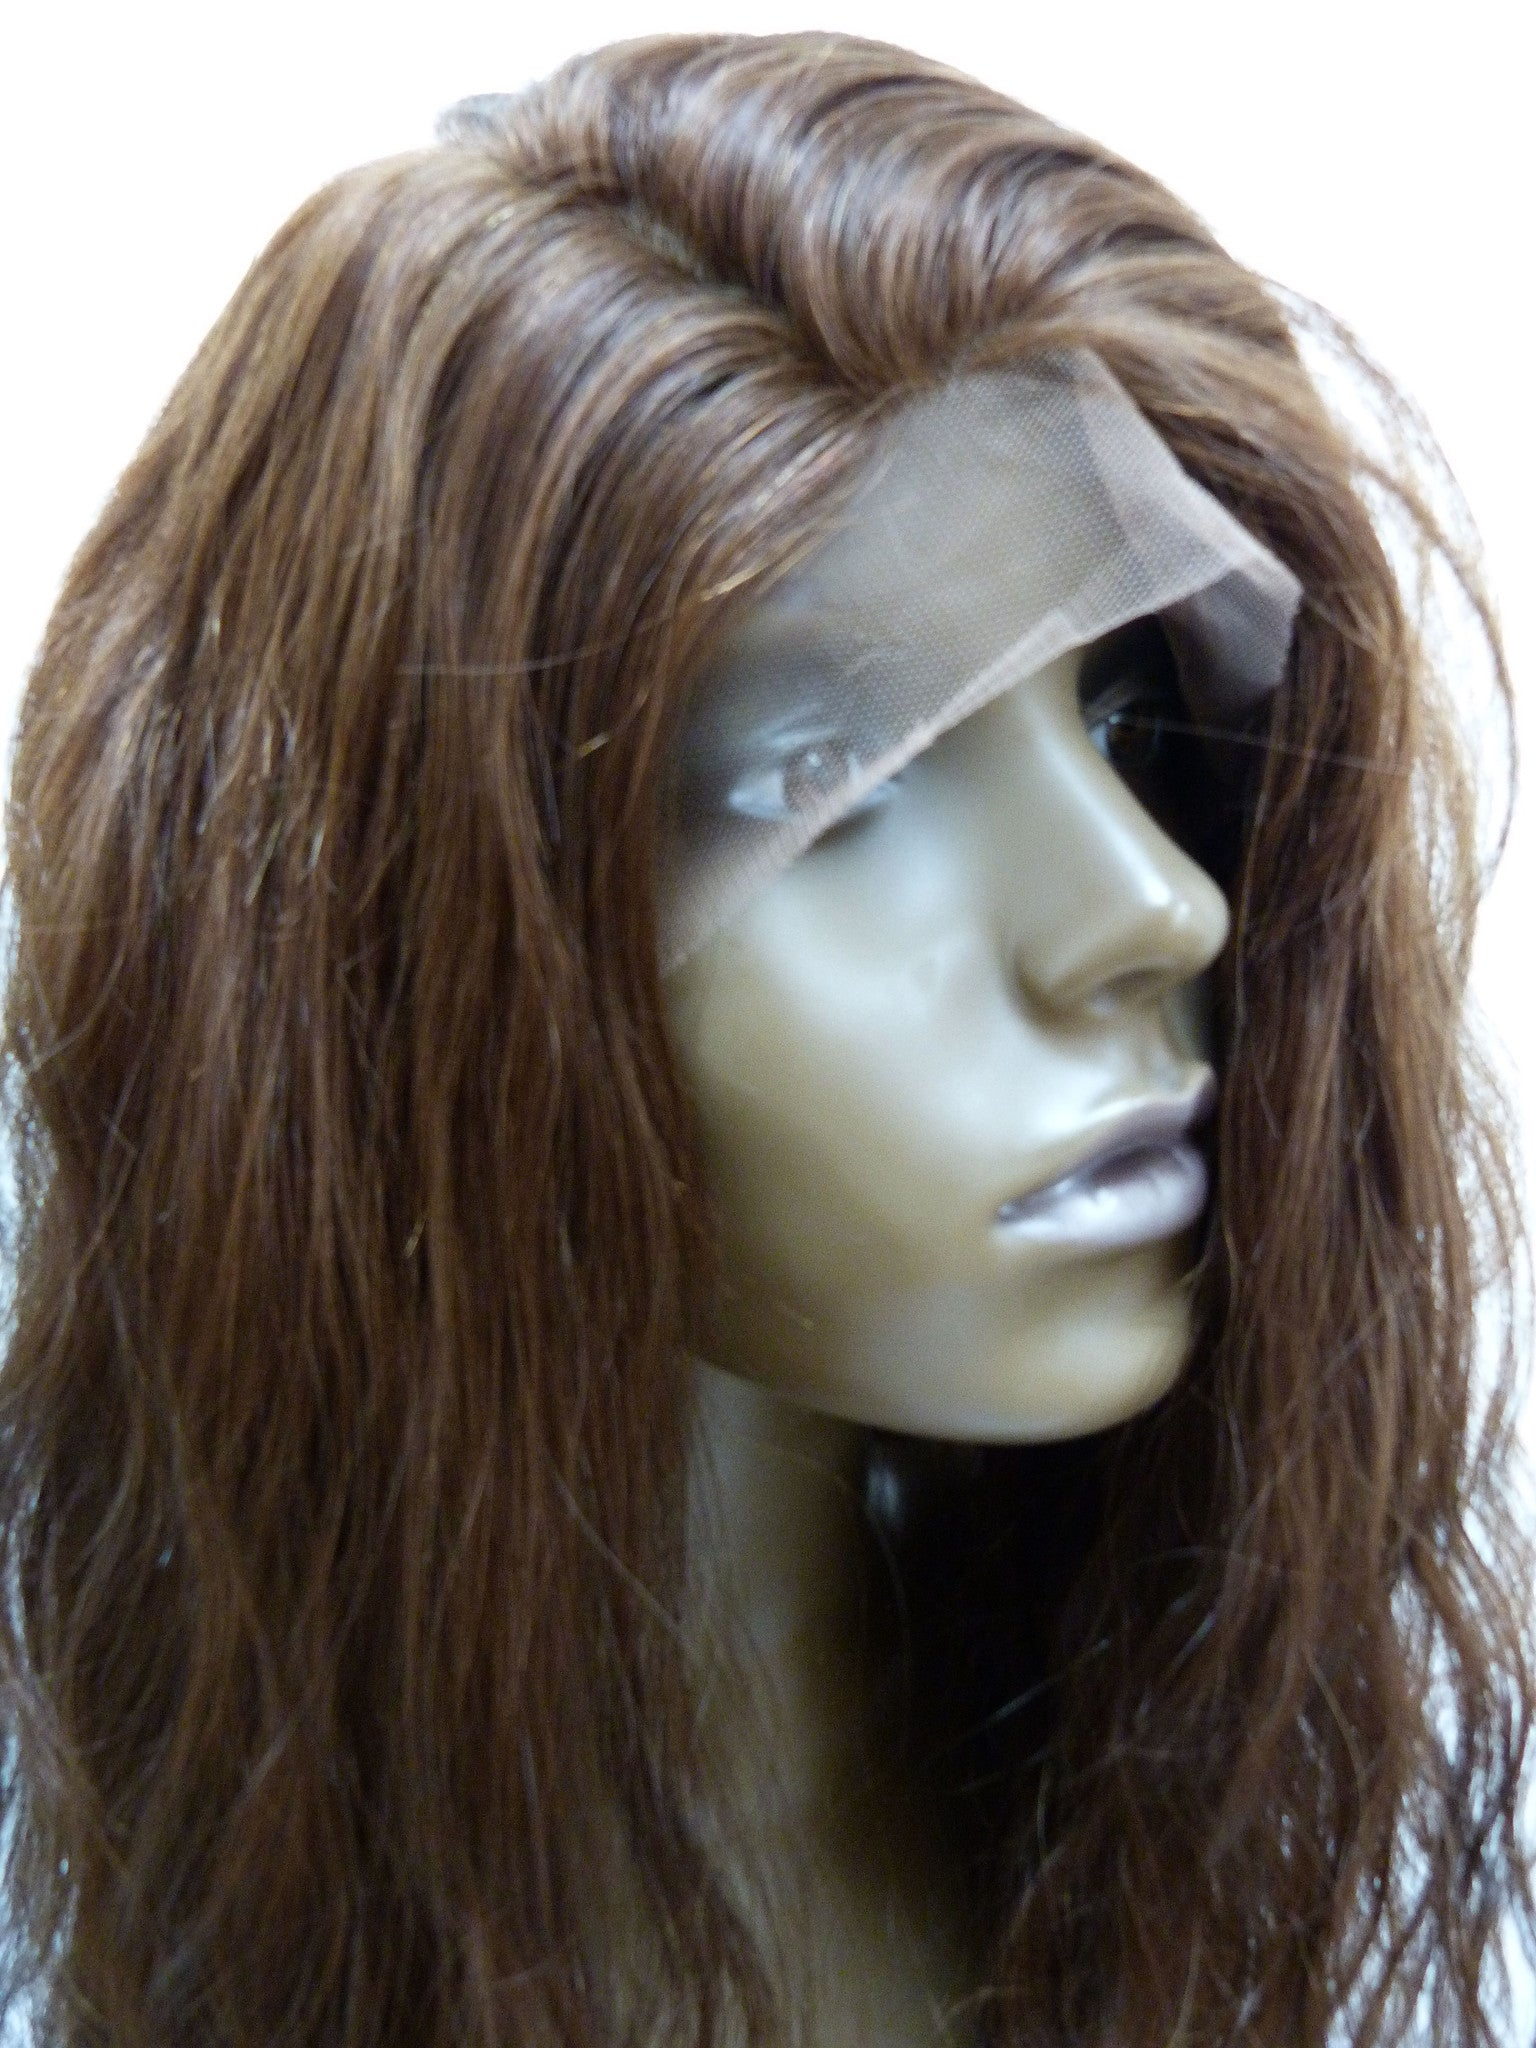 02229cb75 European Virgin Remy Full Lace Wig-Virgin Hair & Beauty, The Best Hair  Extensions, Real Virgin Human Hair.